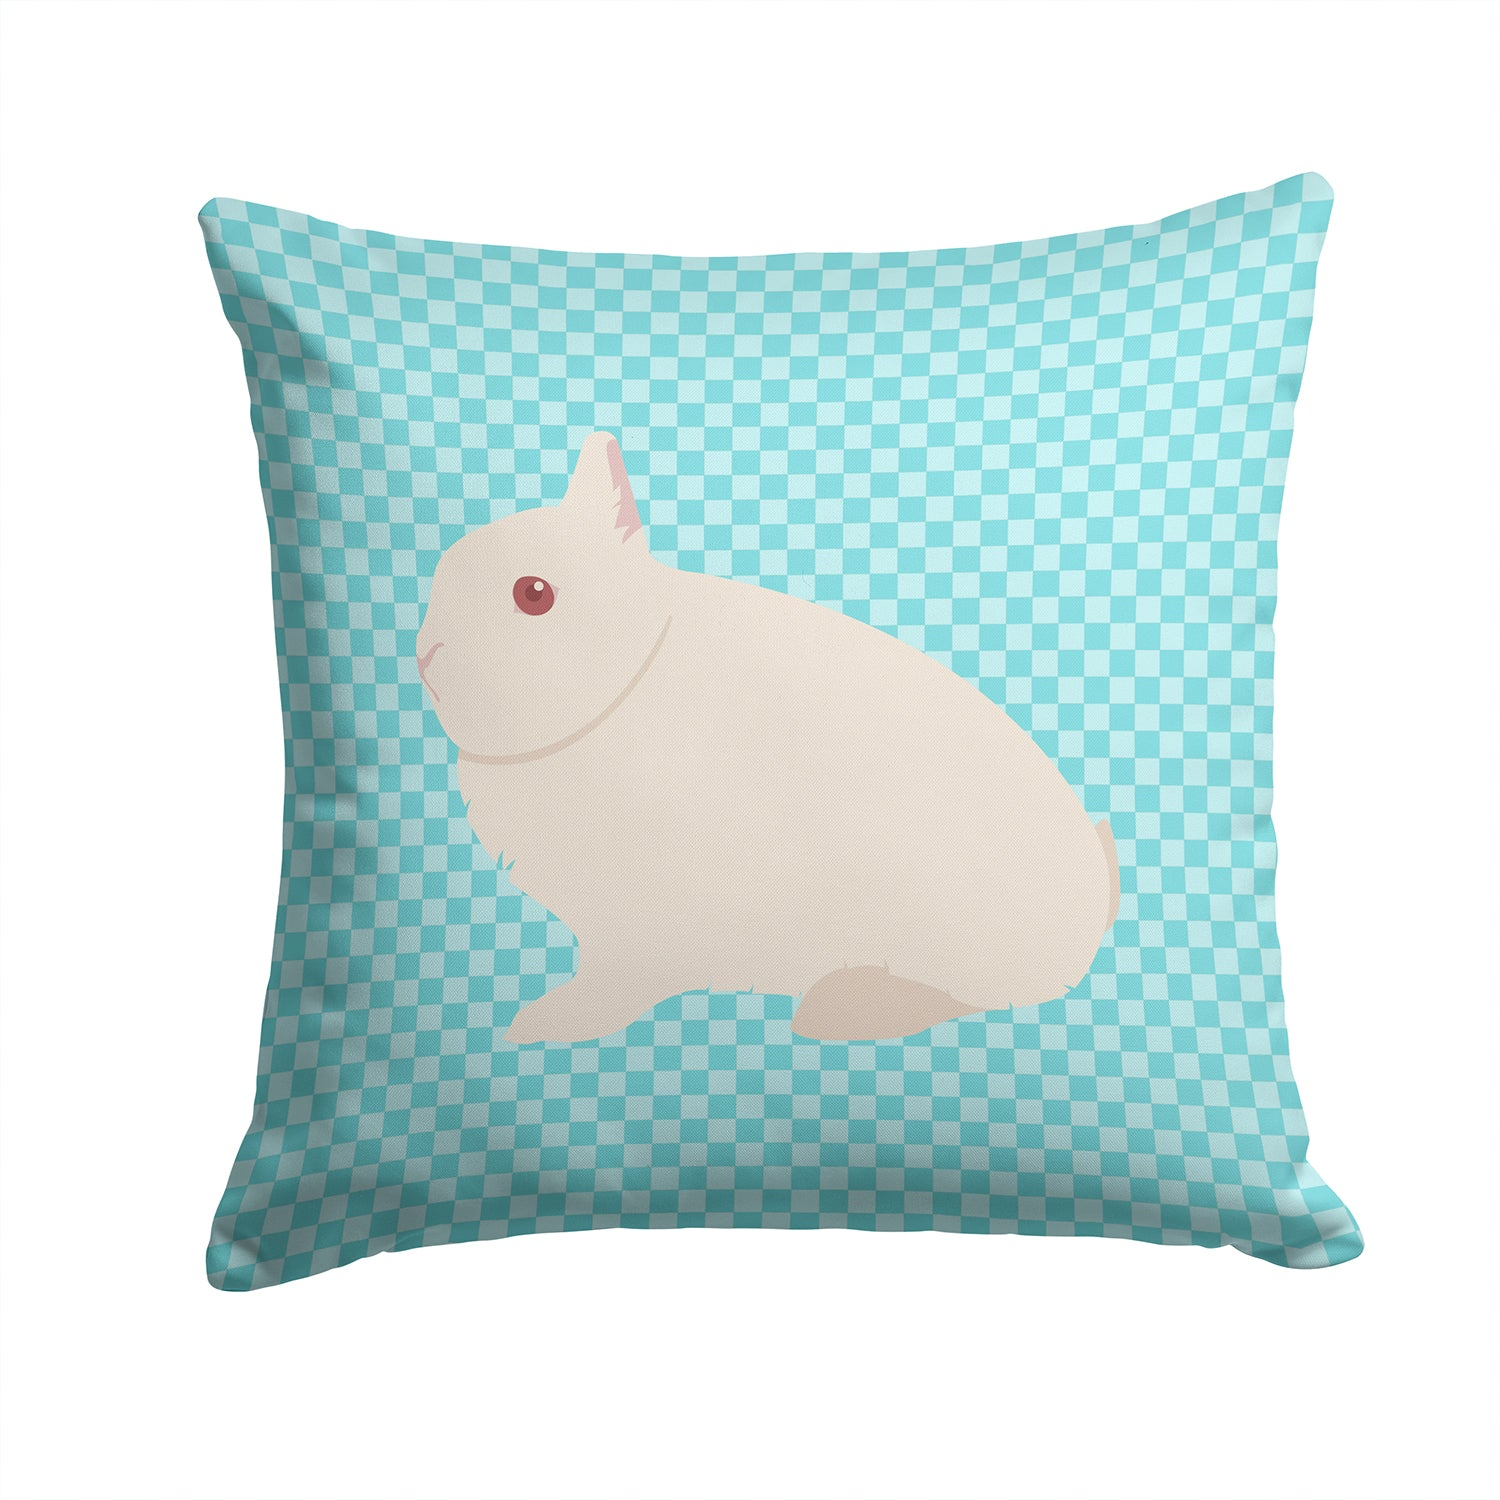 Hermelin Rabbit Blue Check Fabric Decorative Pillow BB8138PW1414 by Caroline's Treasures